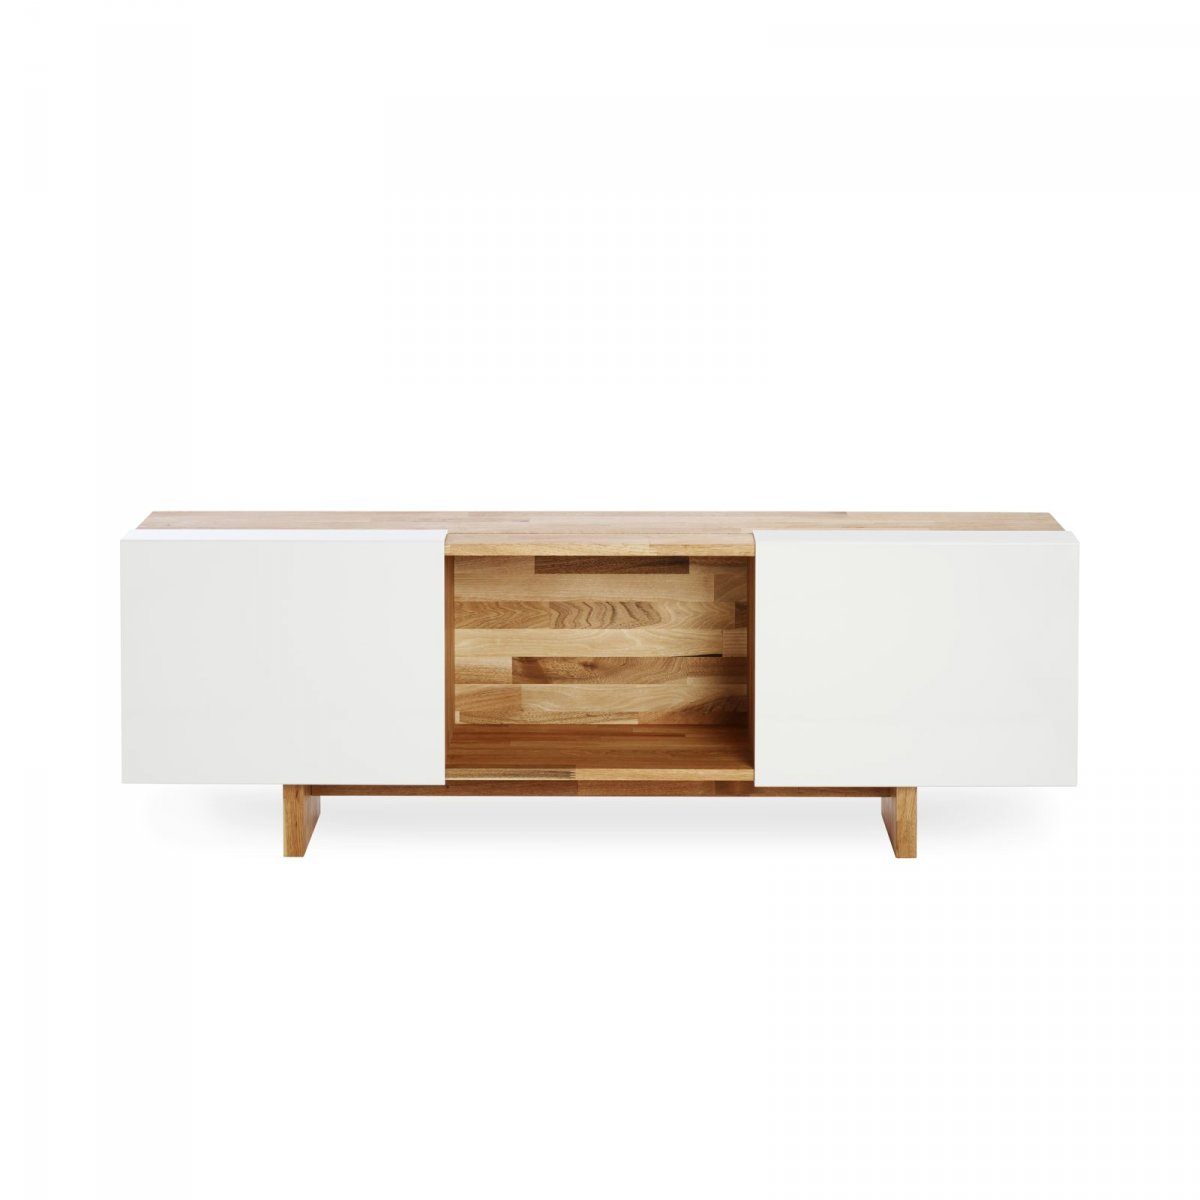 LAXseries 3X Shelf with Base.